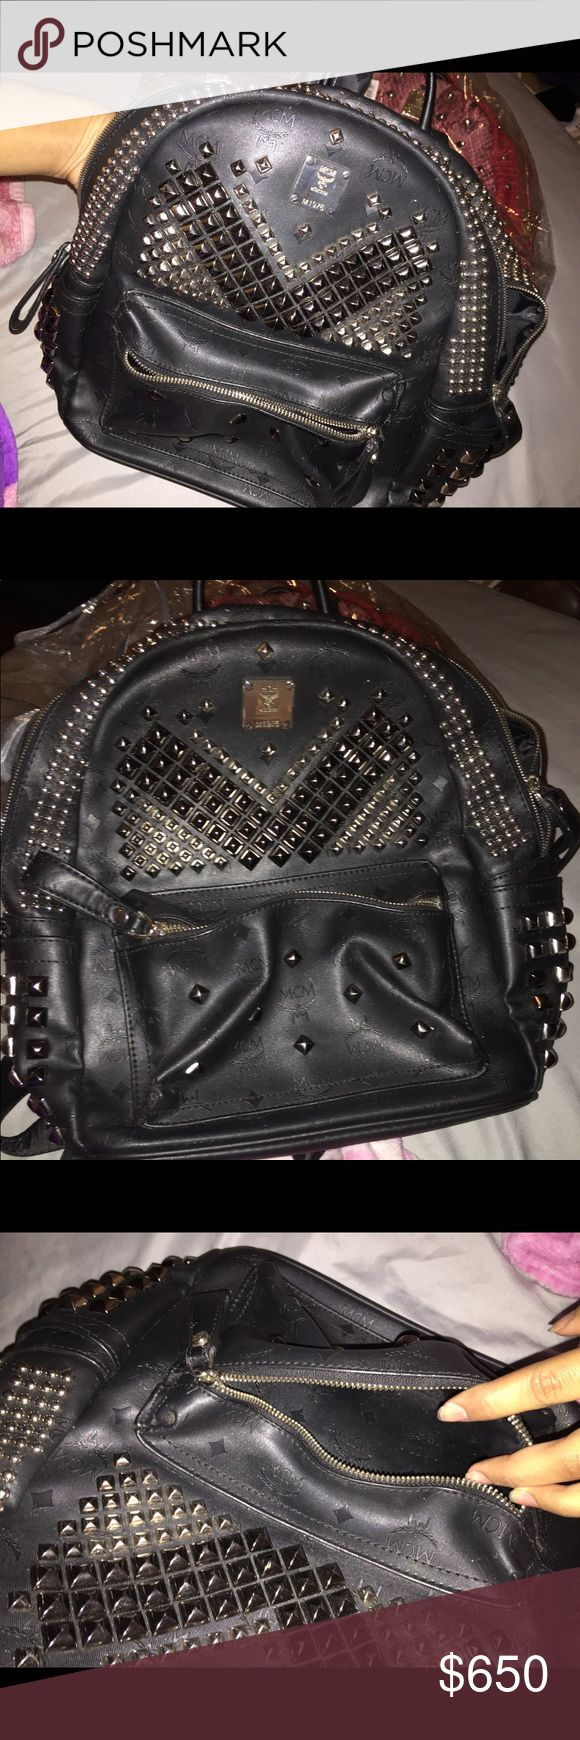 MCM STUDDED BACKPACK Semi-new/used a couple times! $650 or best price! I have another pink MCM BACKPACK. Bags Backpacks